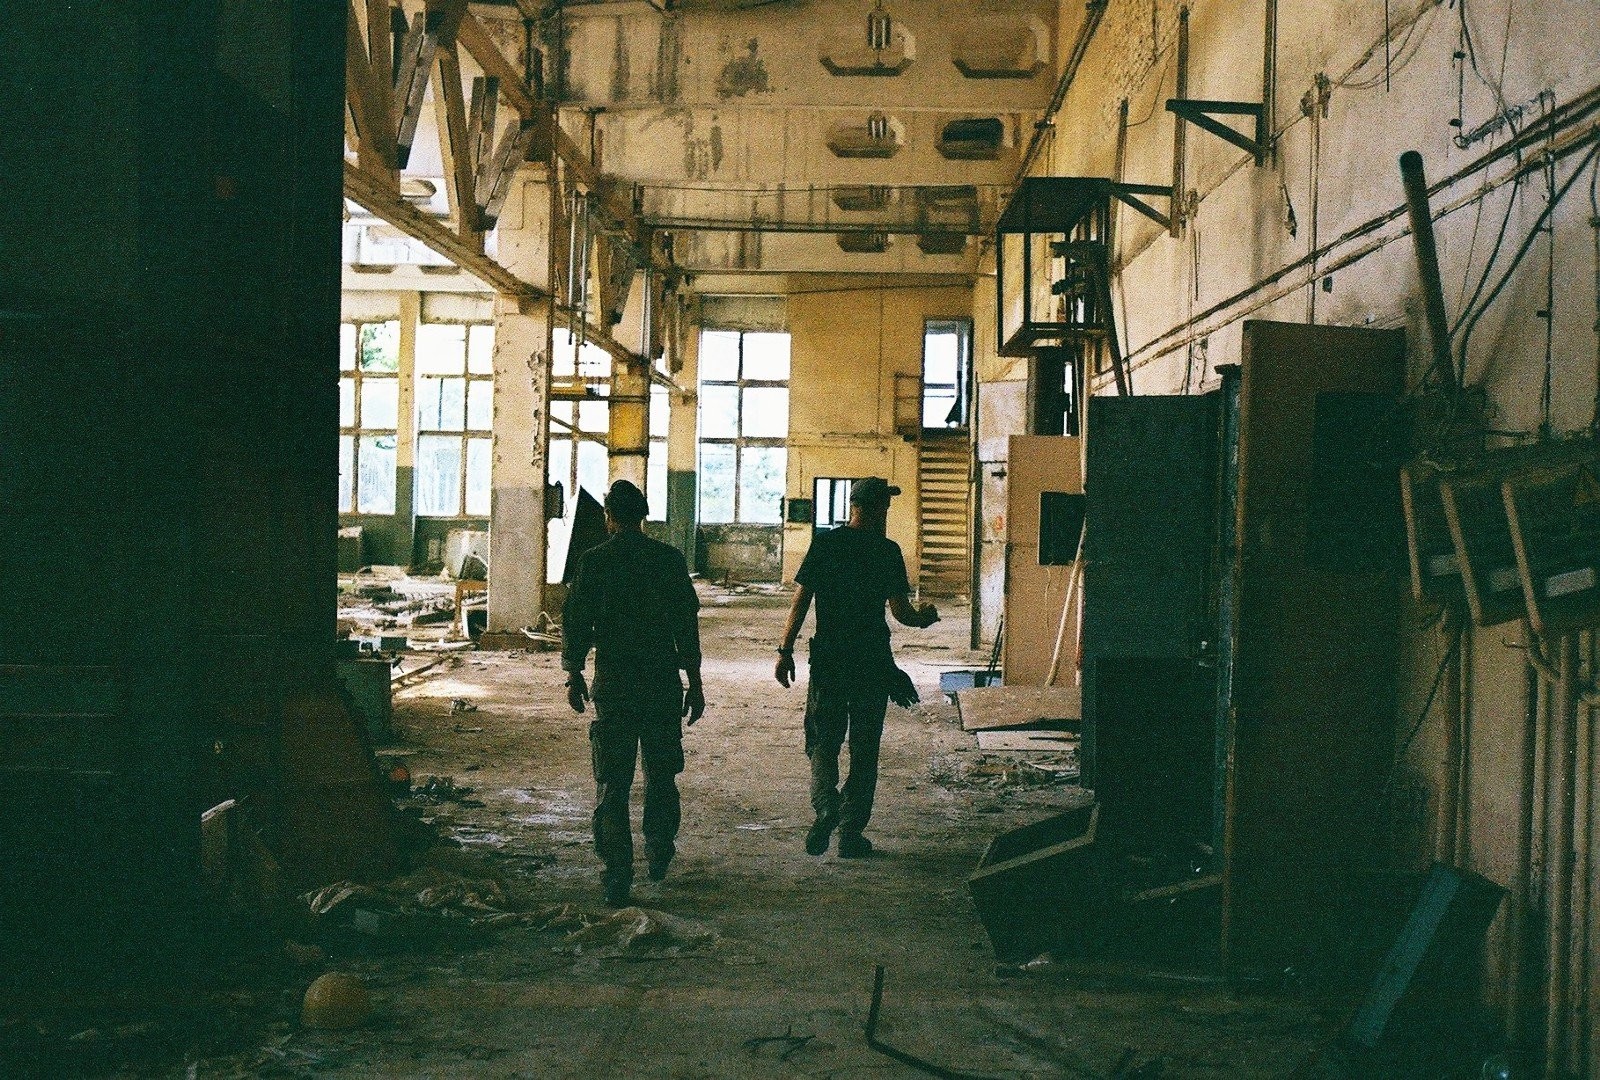 snaeking-into-chernobyl2 SNEAKING INTO CHERNOBYL